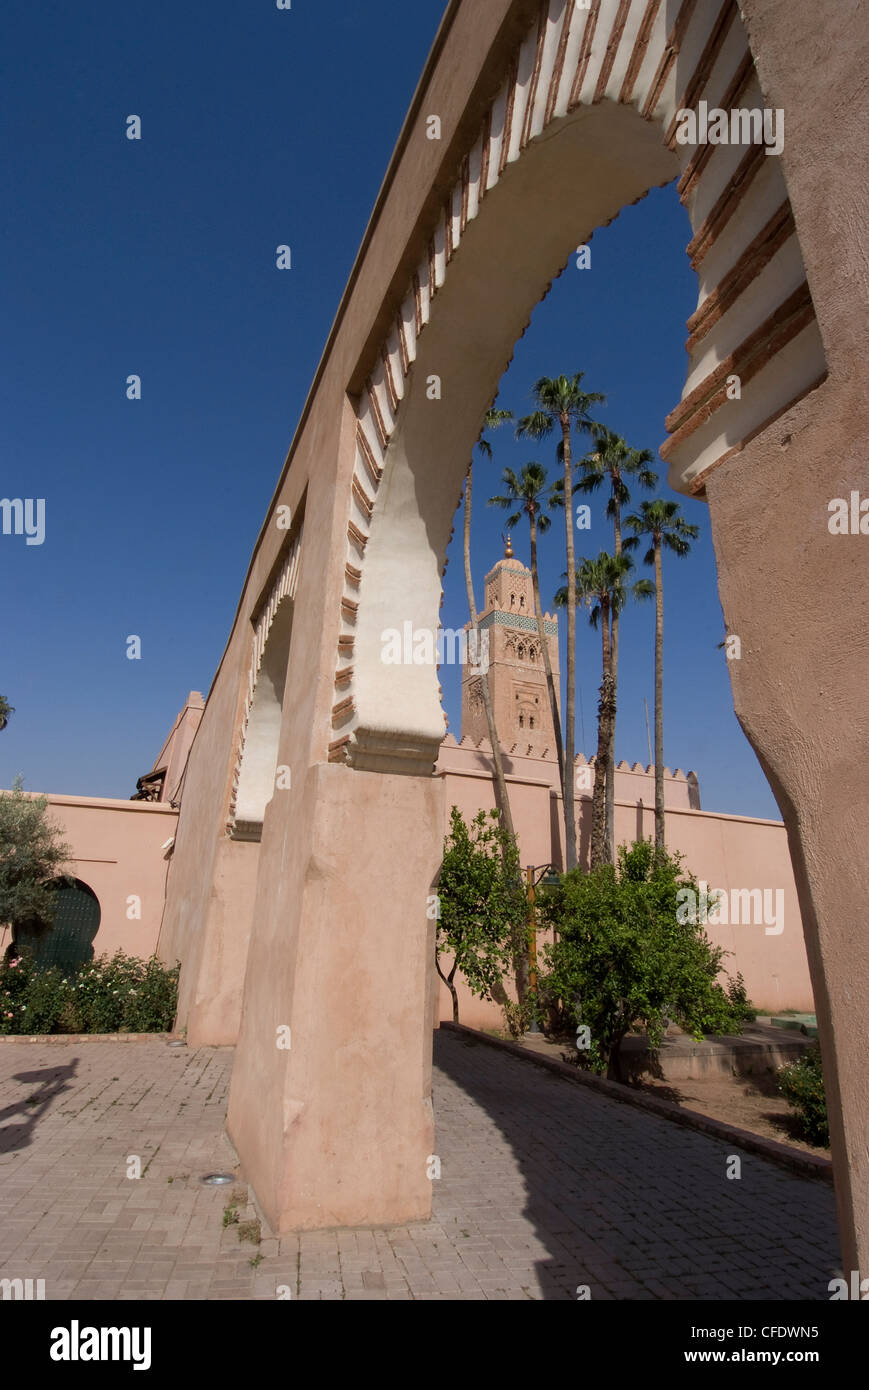 The Koutoubia Mosque (Booksellers' Mosque), the landmark of Marrakech, Morocco, North Africa, Africa - Stock Image